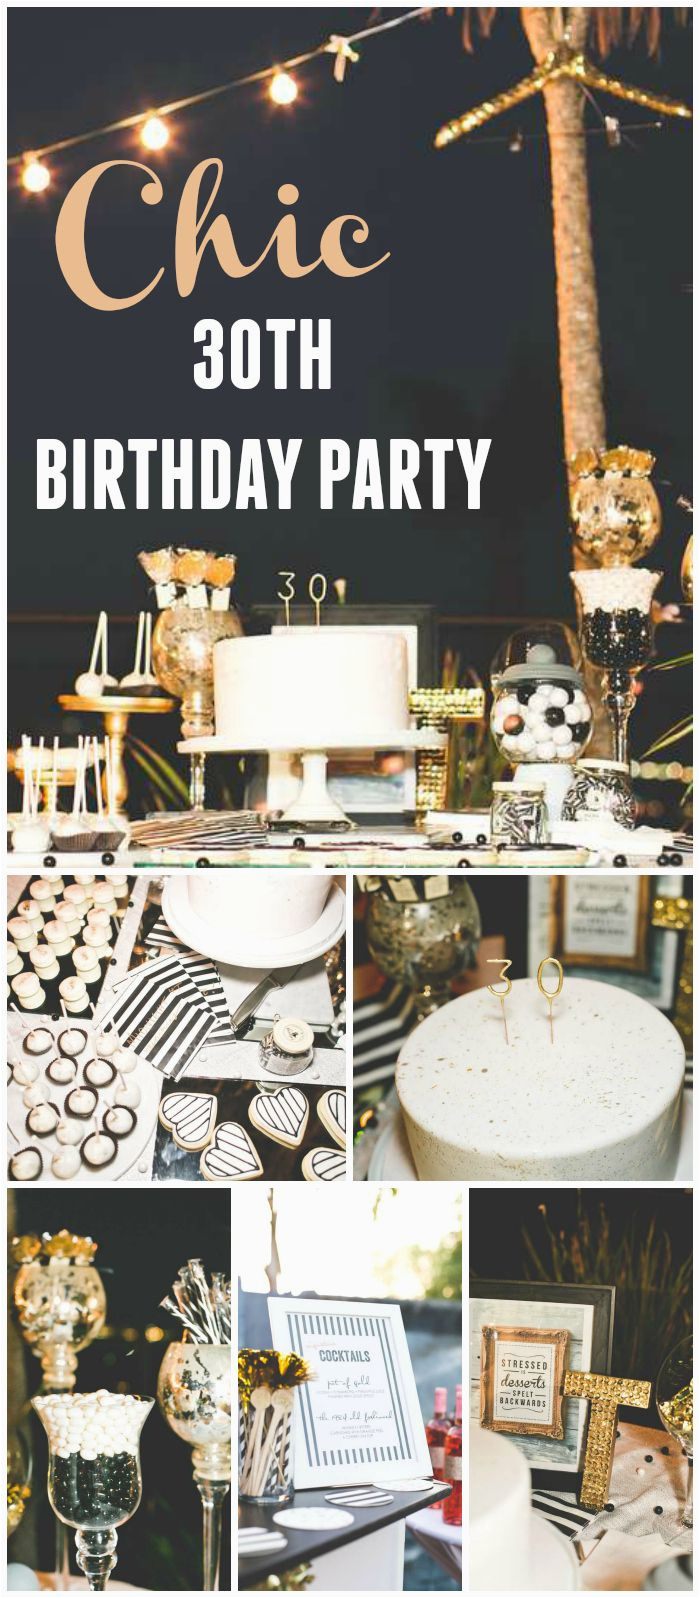 Decorations for 30th Birthday Party Ideas Best 25 30th Birthday themes Ideas On Pinterest 21st